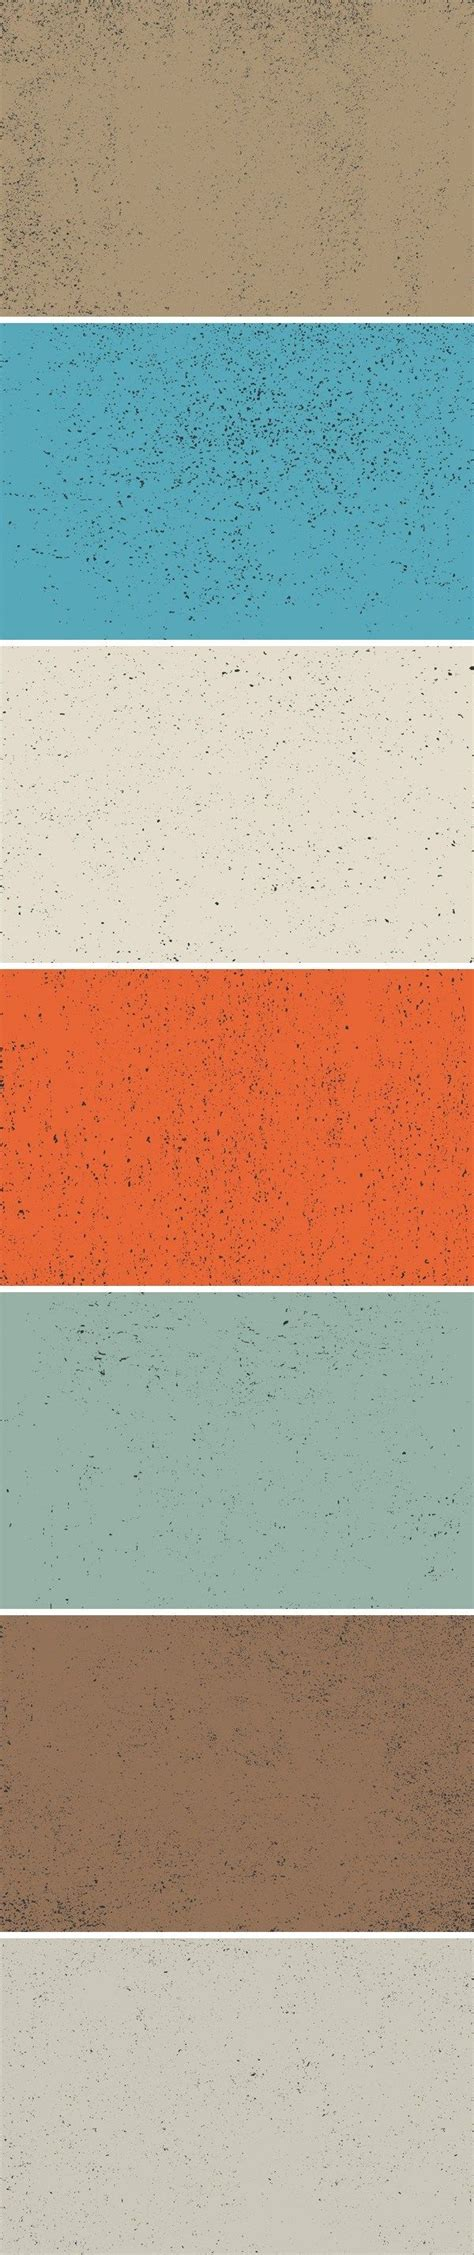 free 7 Speckled Vector Textures Psd Textured background